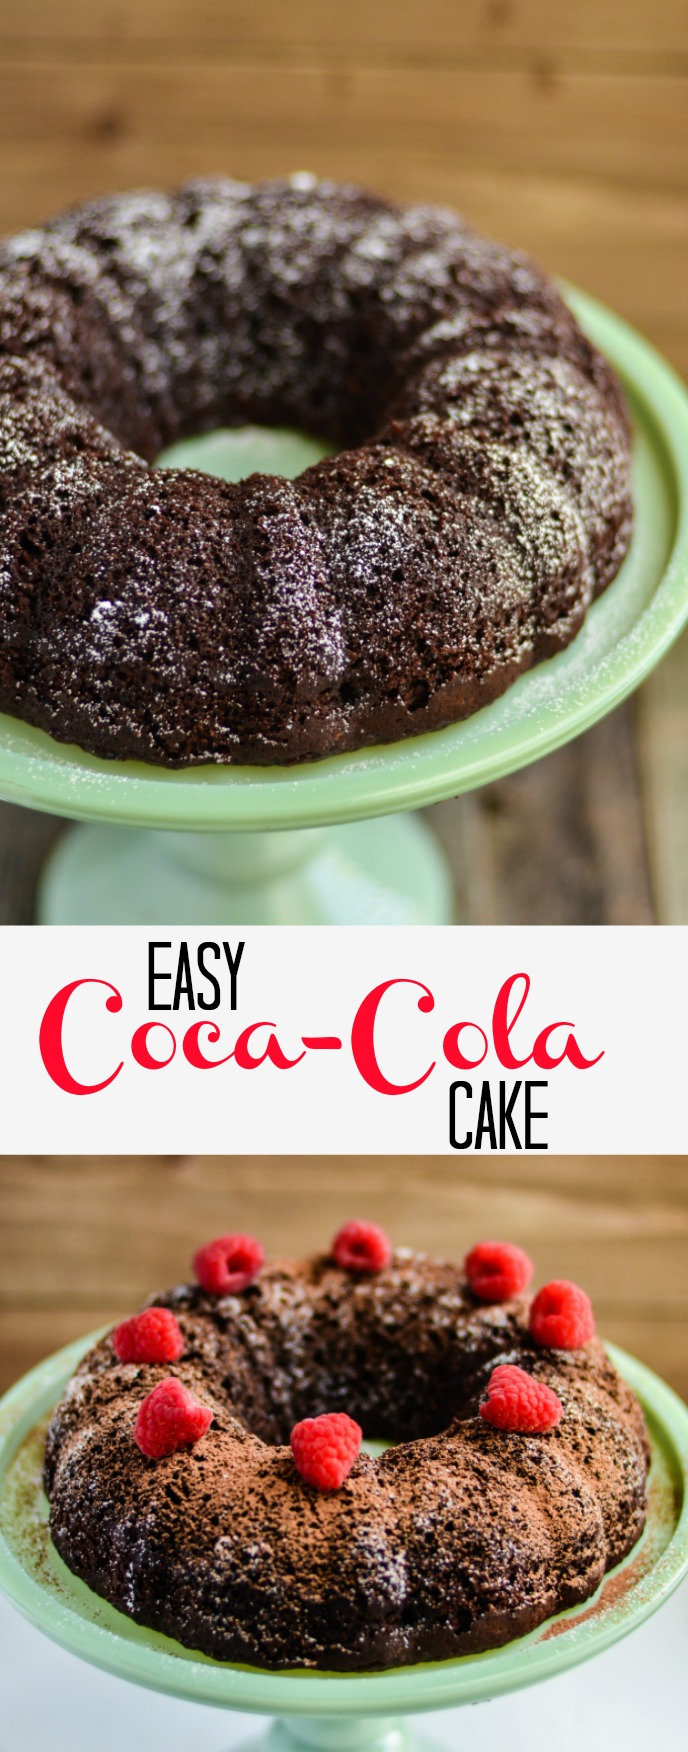 Easy Coca-Cola Cake Recipe